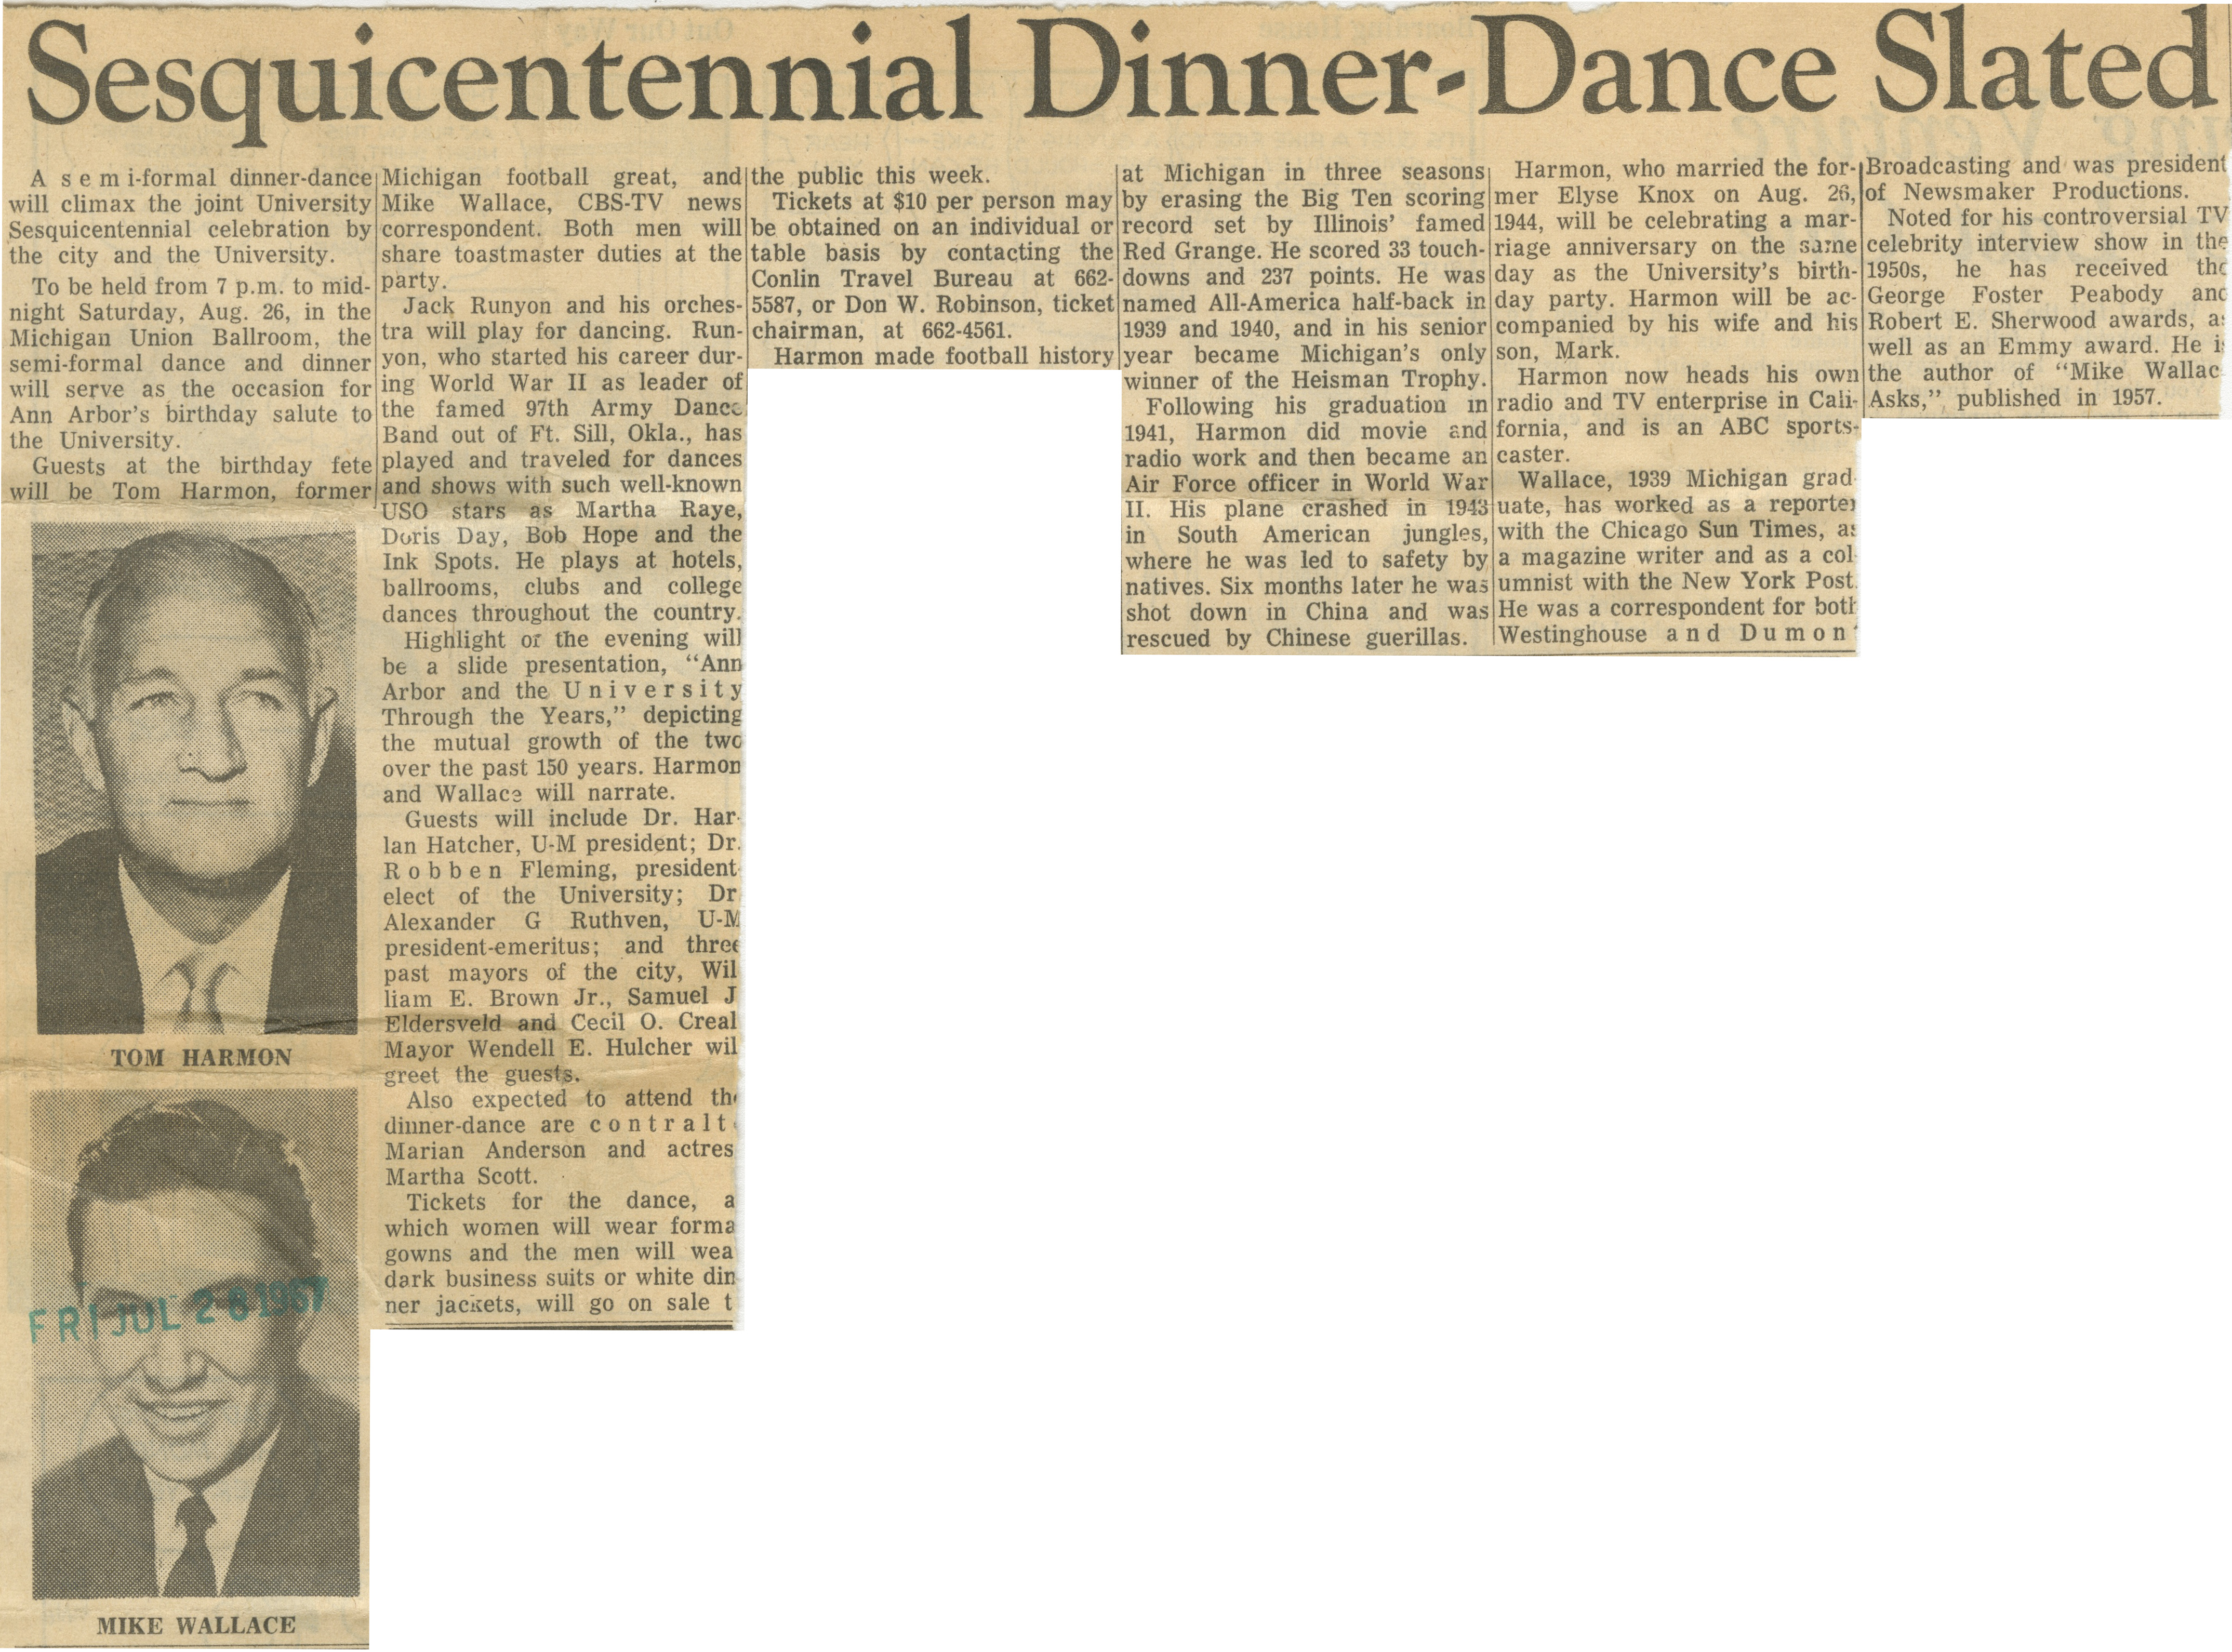 Sesquicentennial Dinner-Dance Slated image